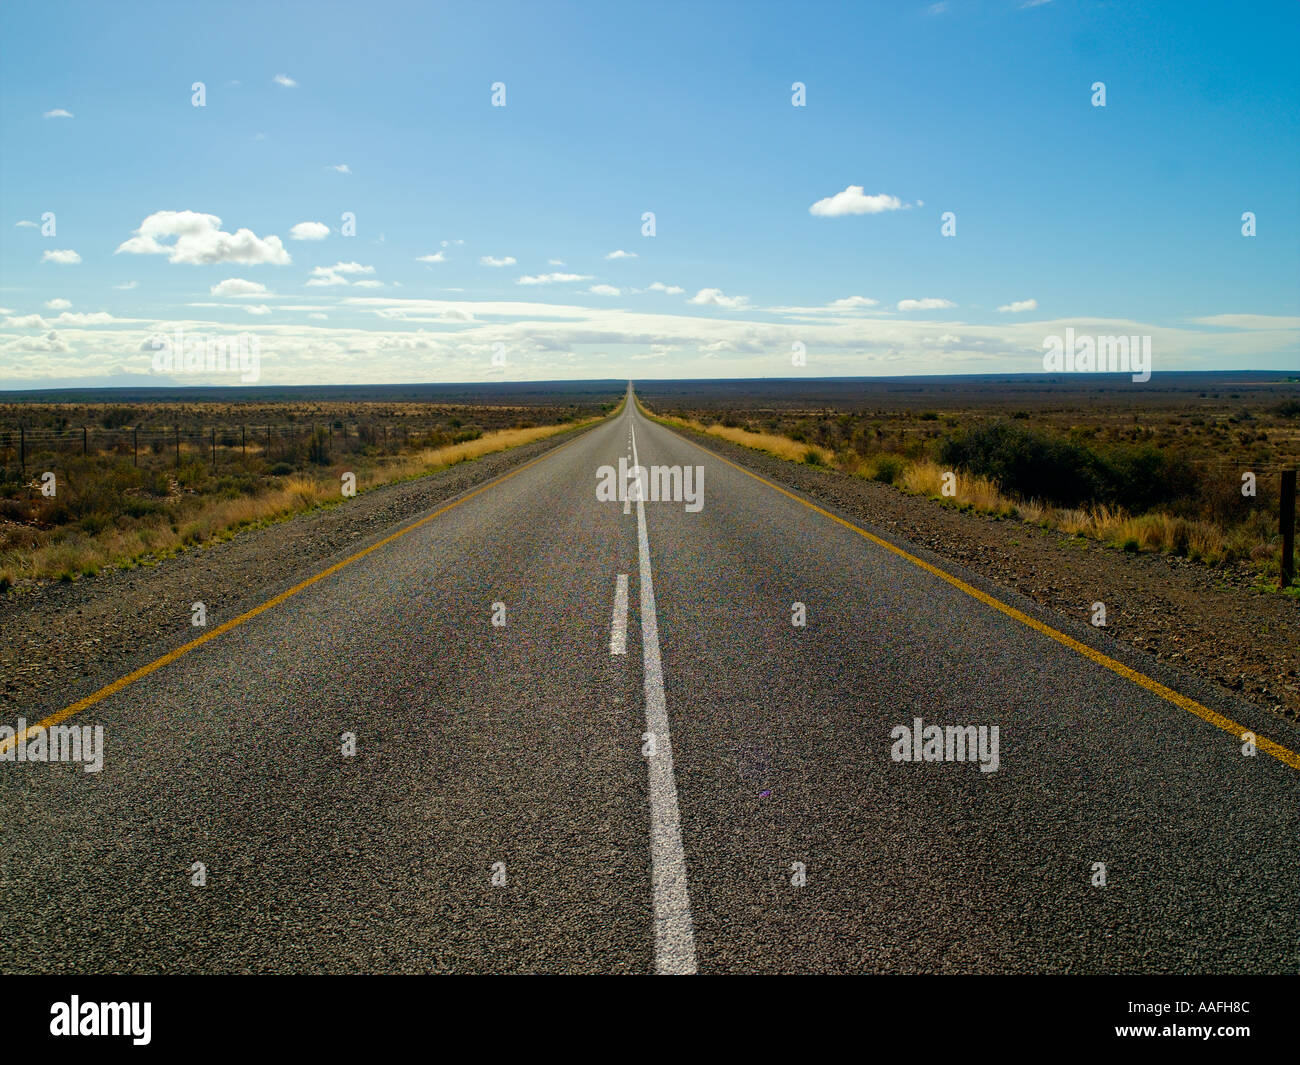 Image result for free images road going nowhere